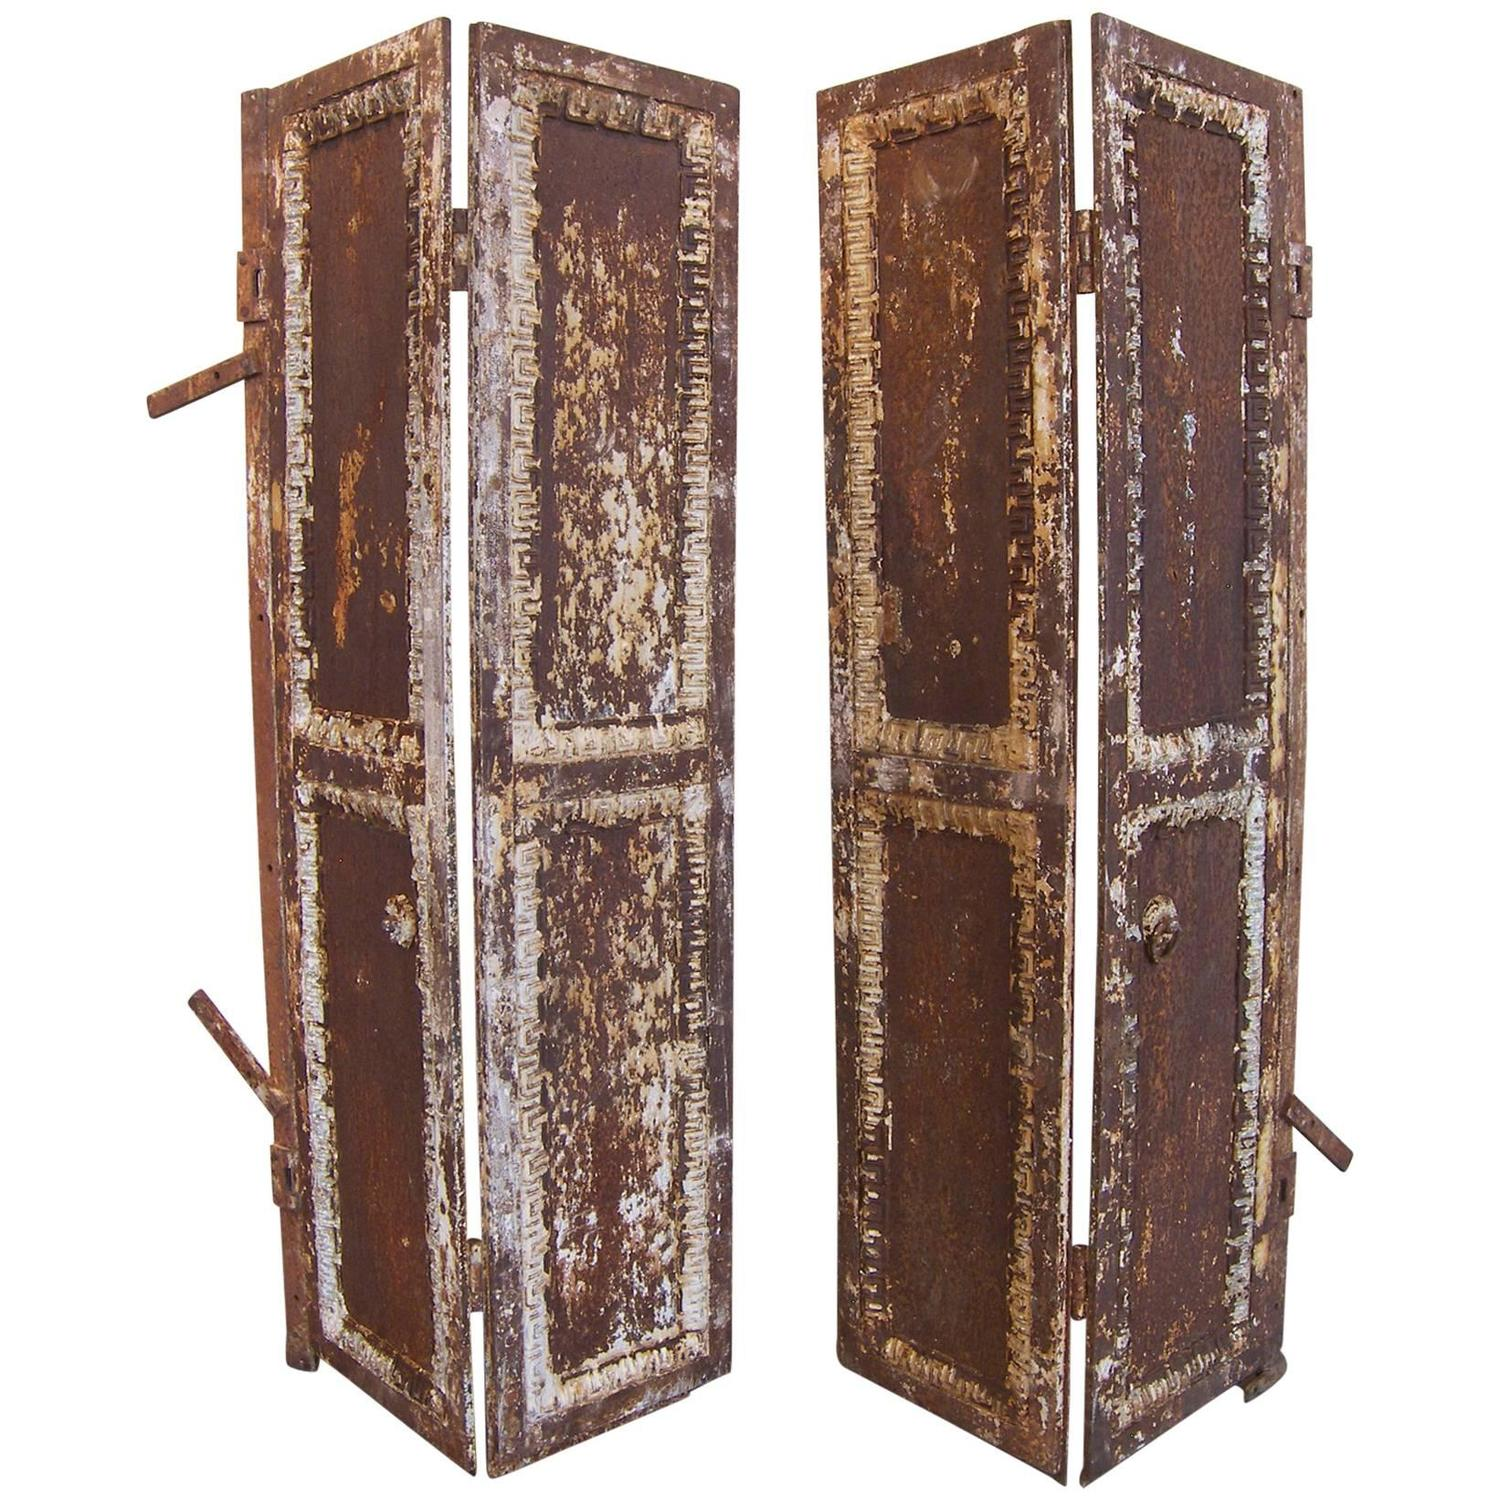 antique and vintage windows 240 for sale at 1stdibs pair of antique industrial cast iron doors window shutters rusted patina